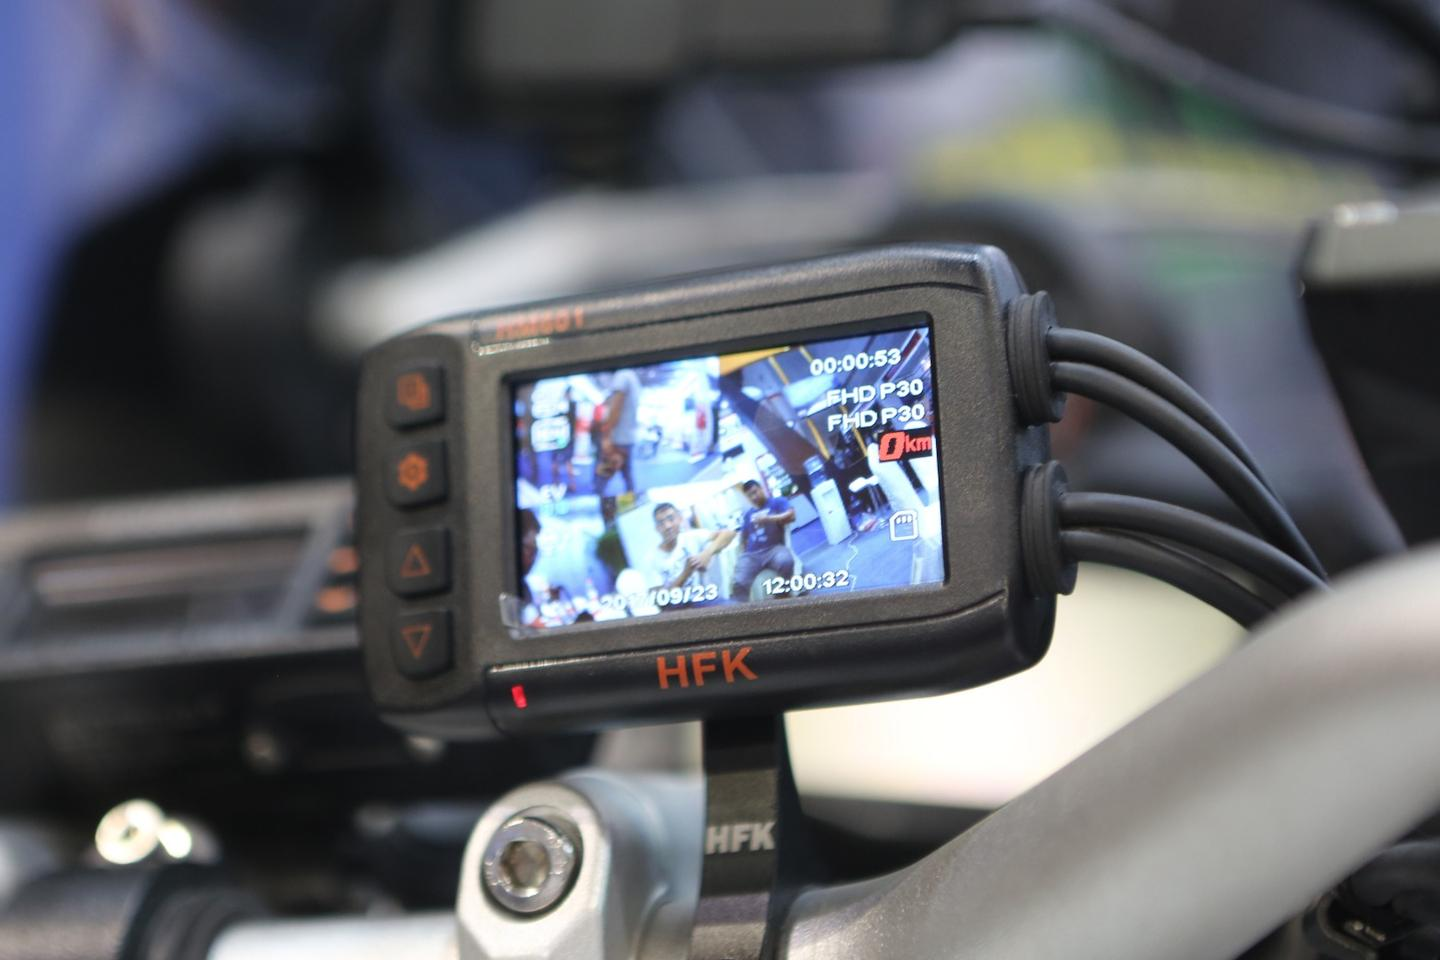 The HFK Motorcycle DVR centrepiece has a 2.7 inch high resolution liquid crystal display screen with anIP67 (water and dust) rating